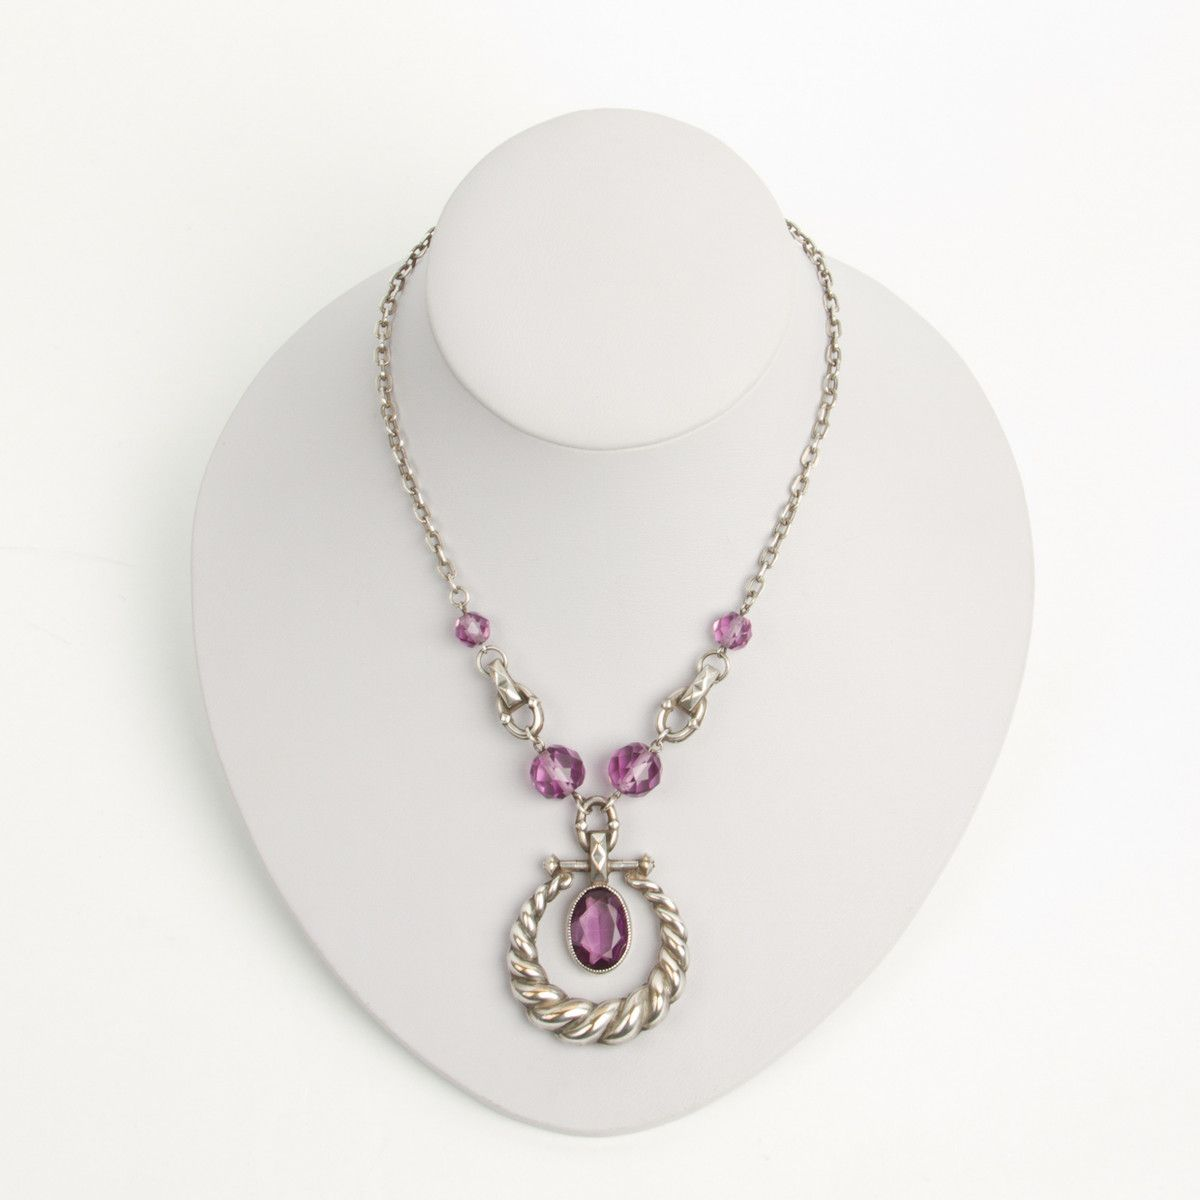 This s pendant necklace is made with silver over brass and